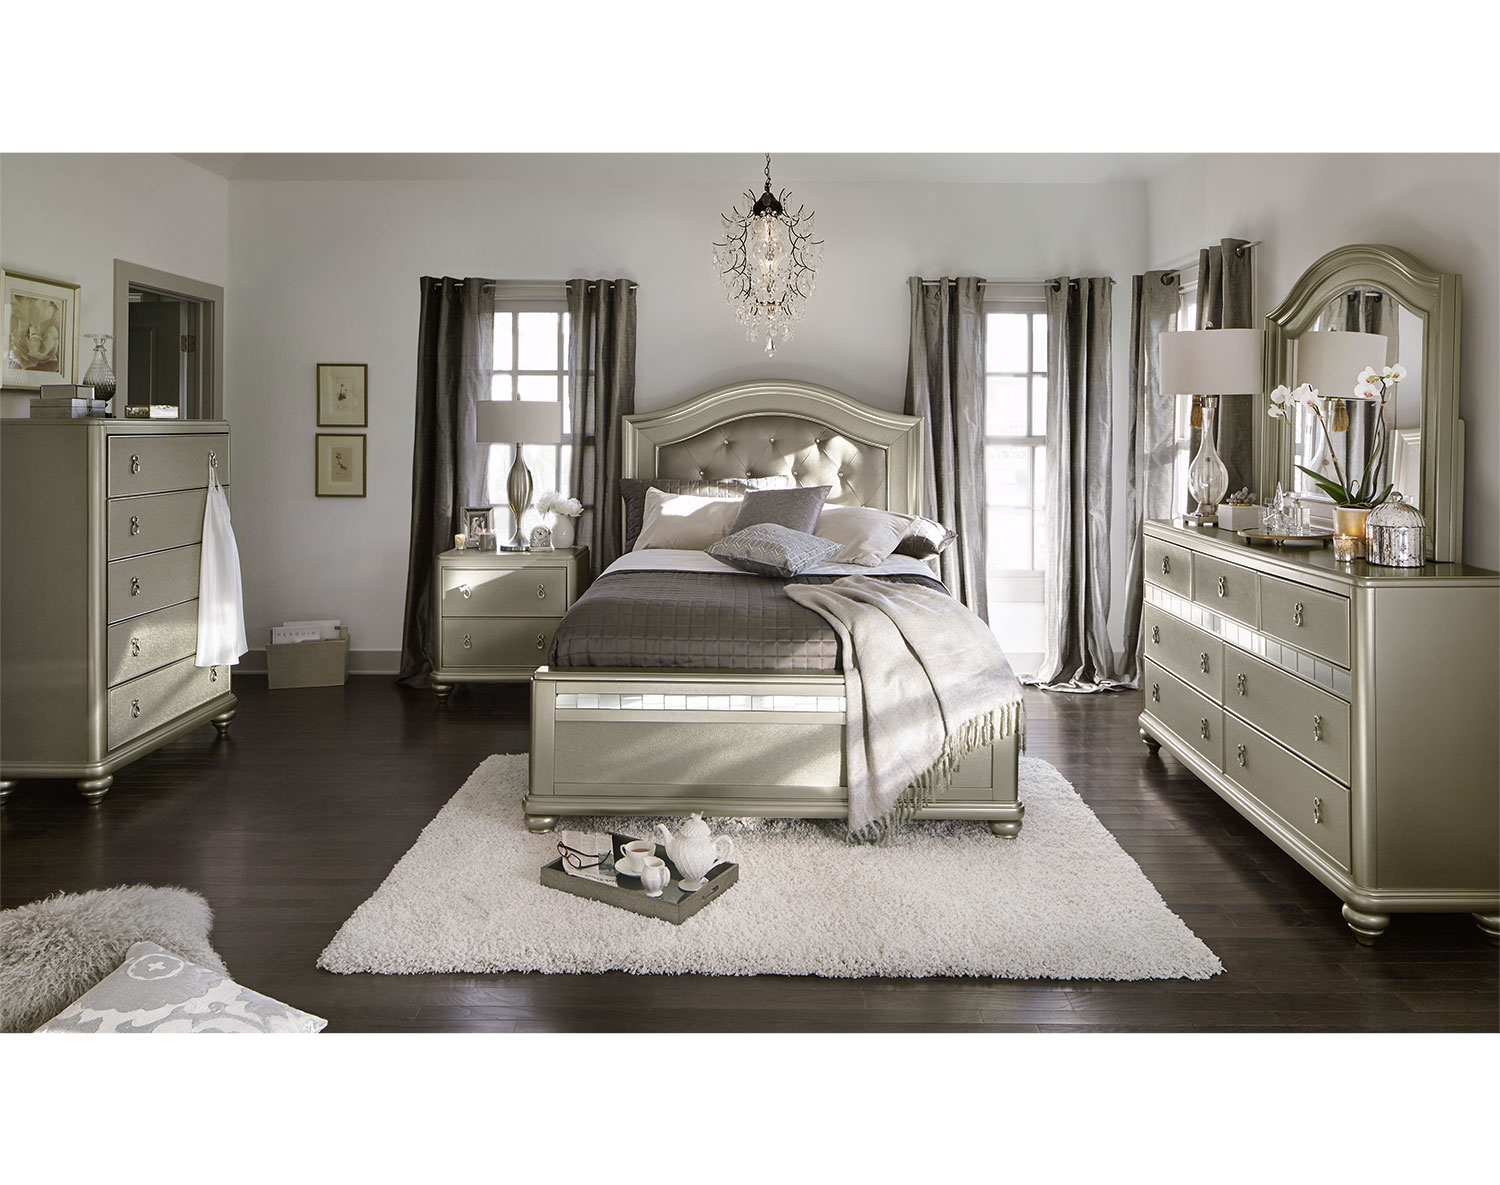 The Serena Collection - Platinum | Value City Furniture and Mattresses